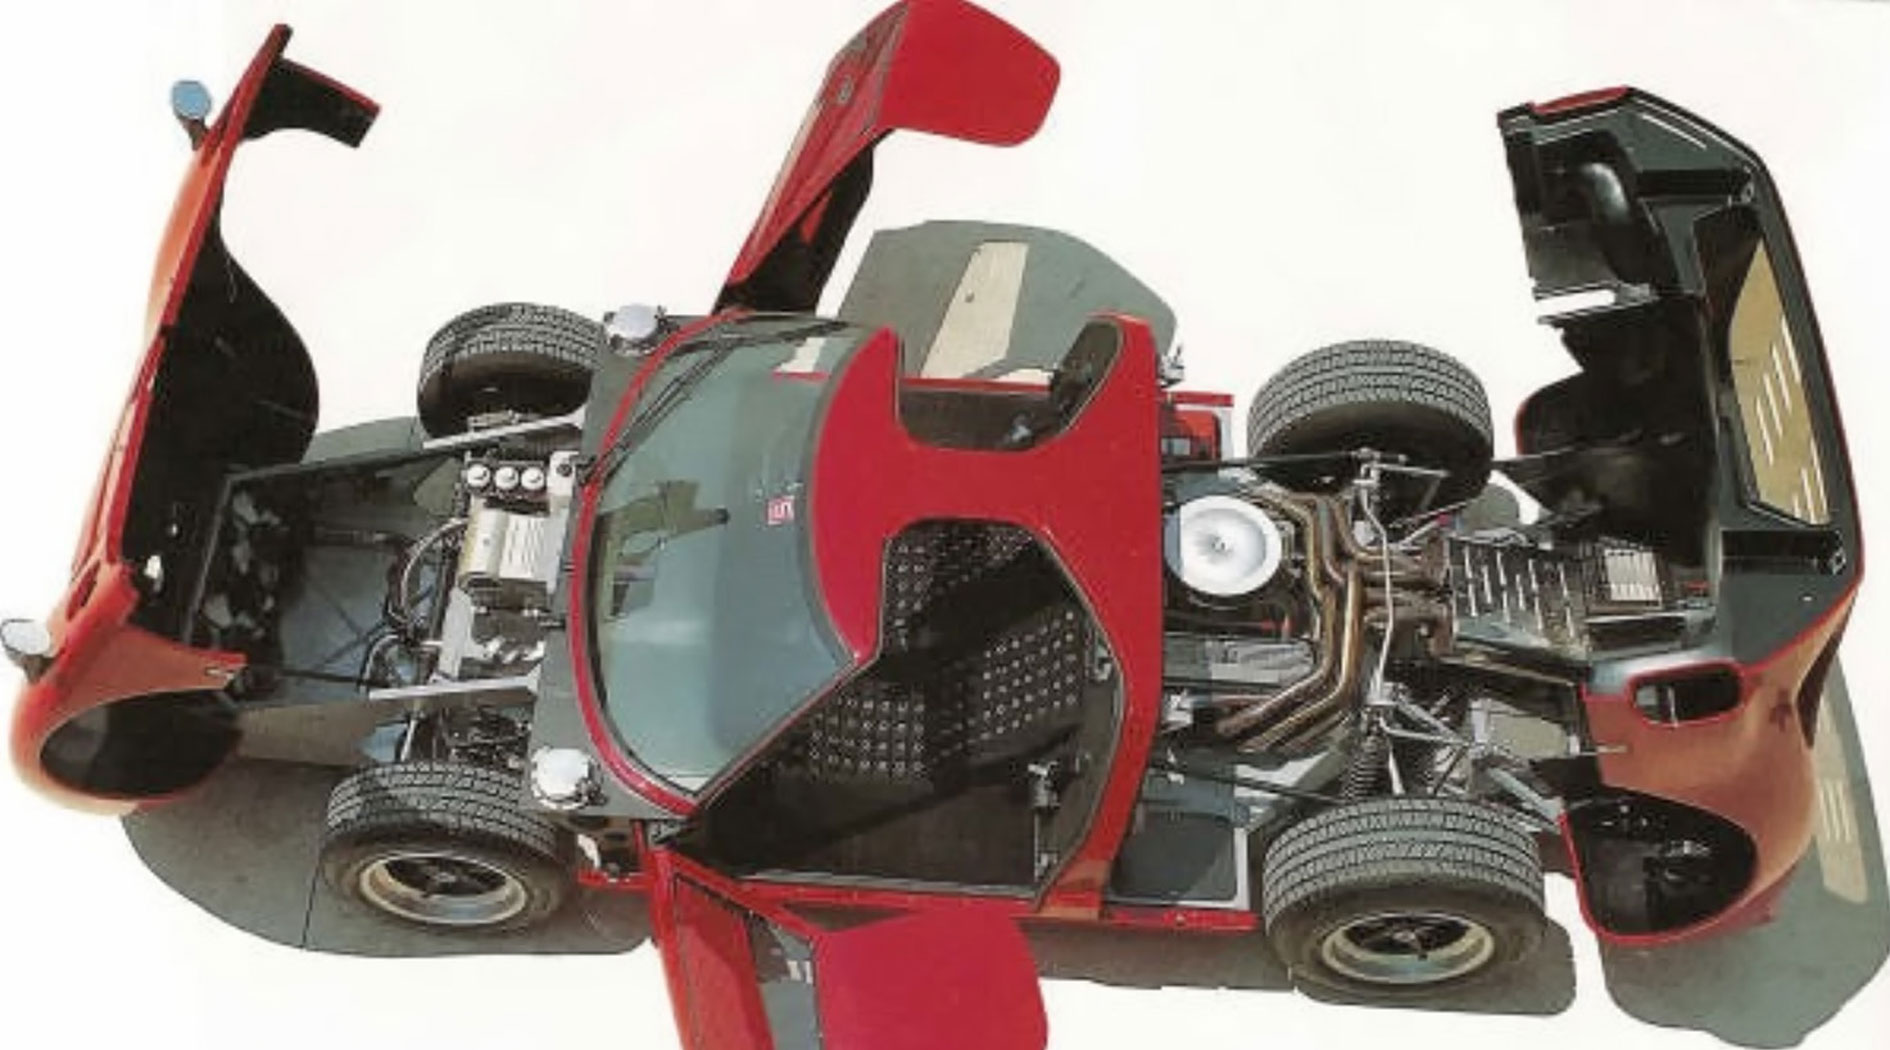 GT40 Mark V chassis 1121